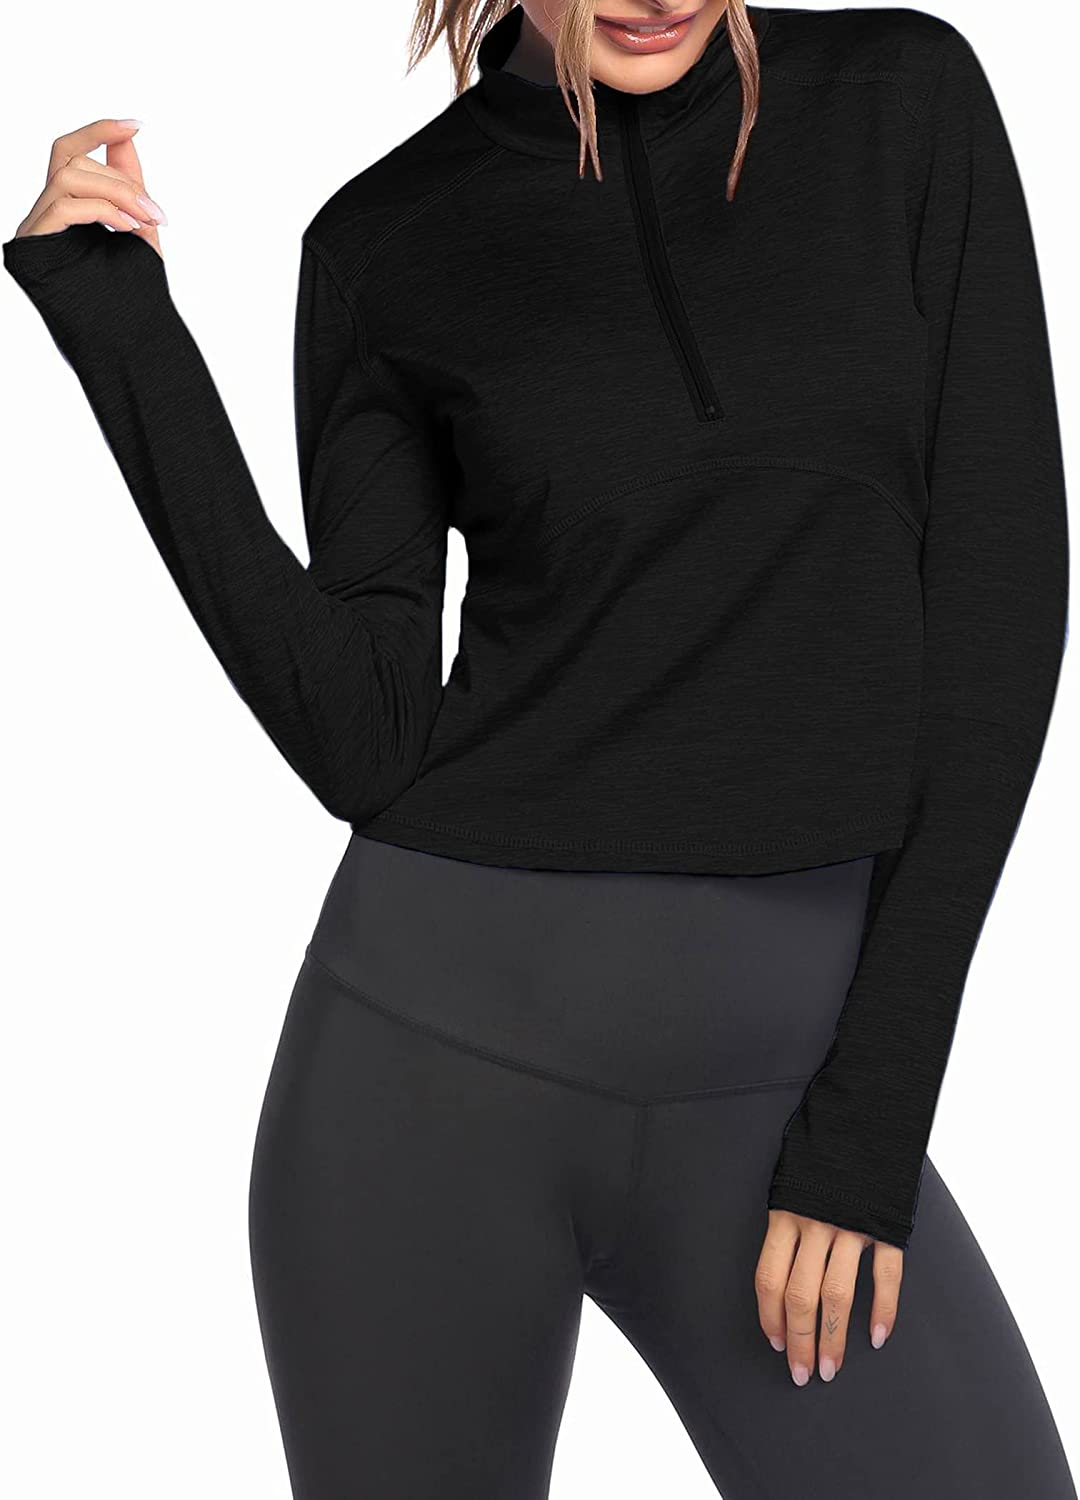 Pinspark Womens Long Sleeve Cropped H free Athletic Zip Pullover Oklahoma City Mall Half